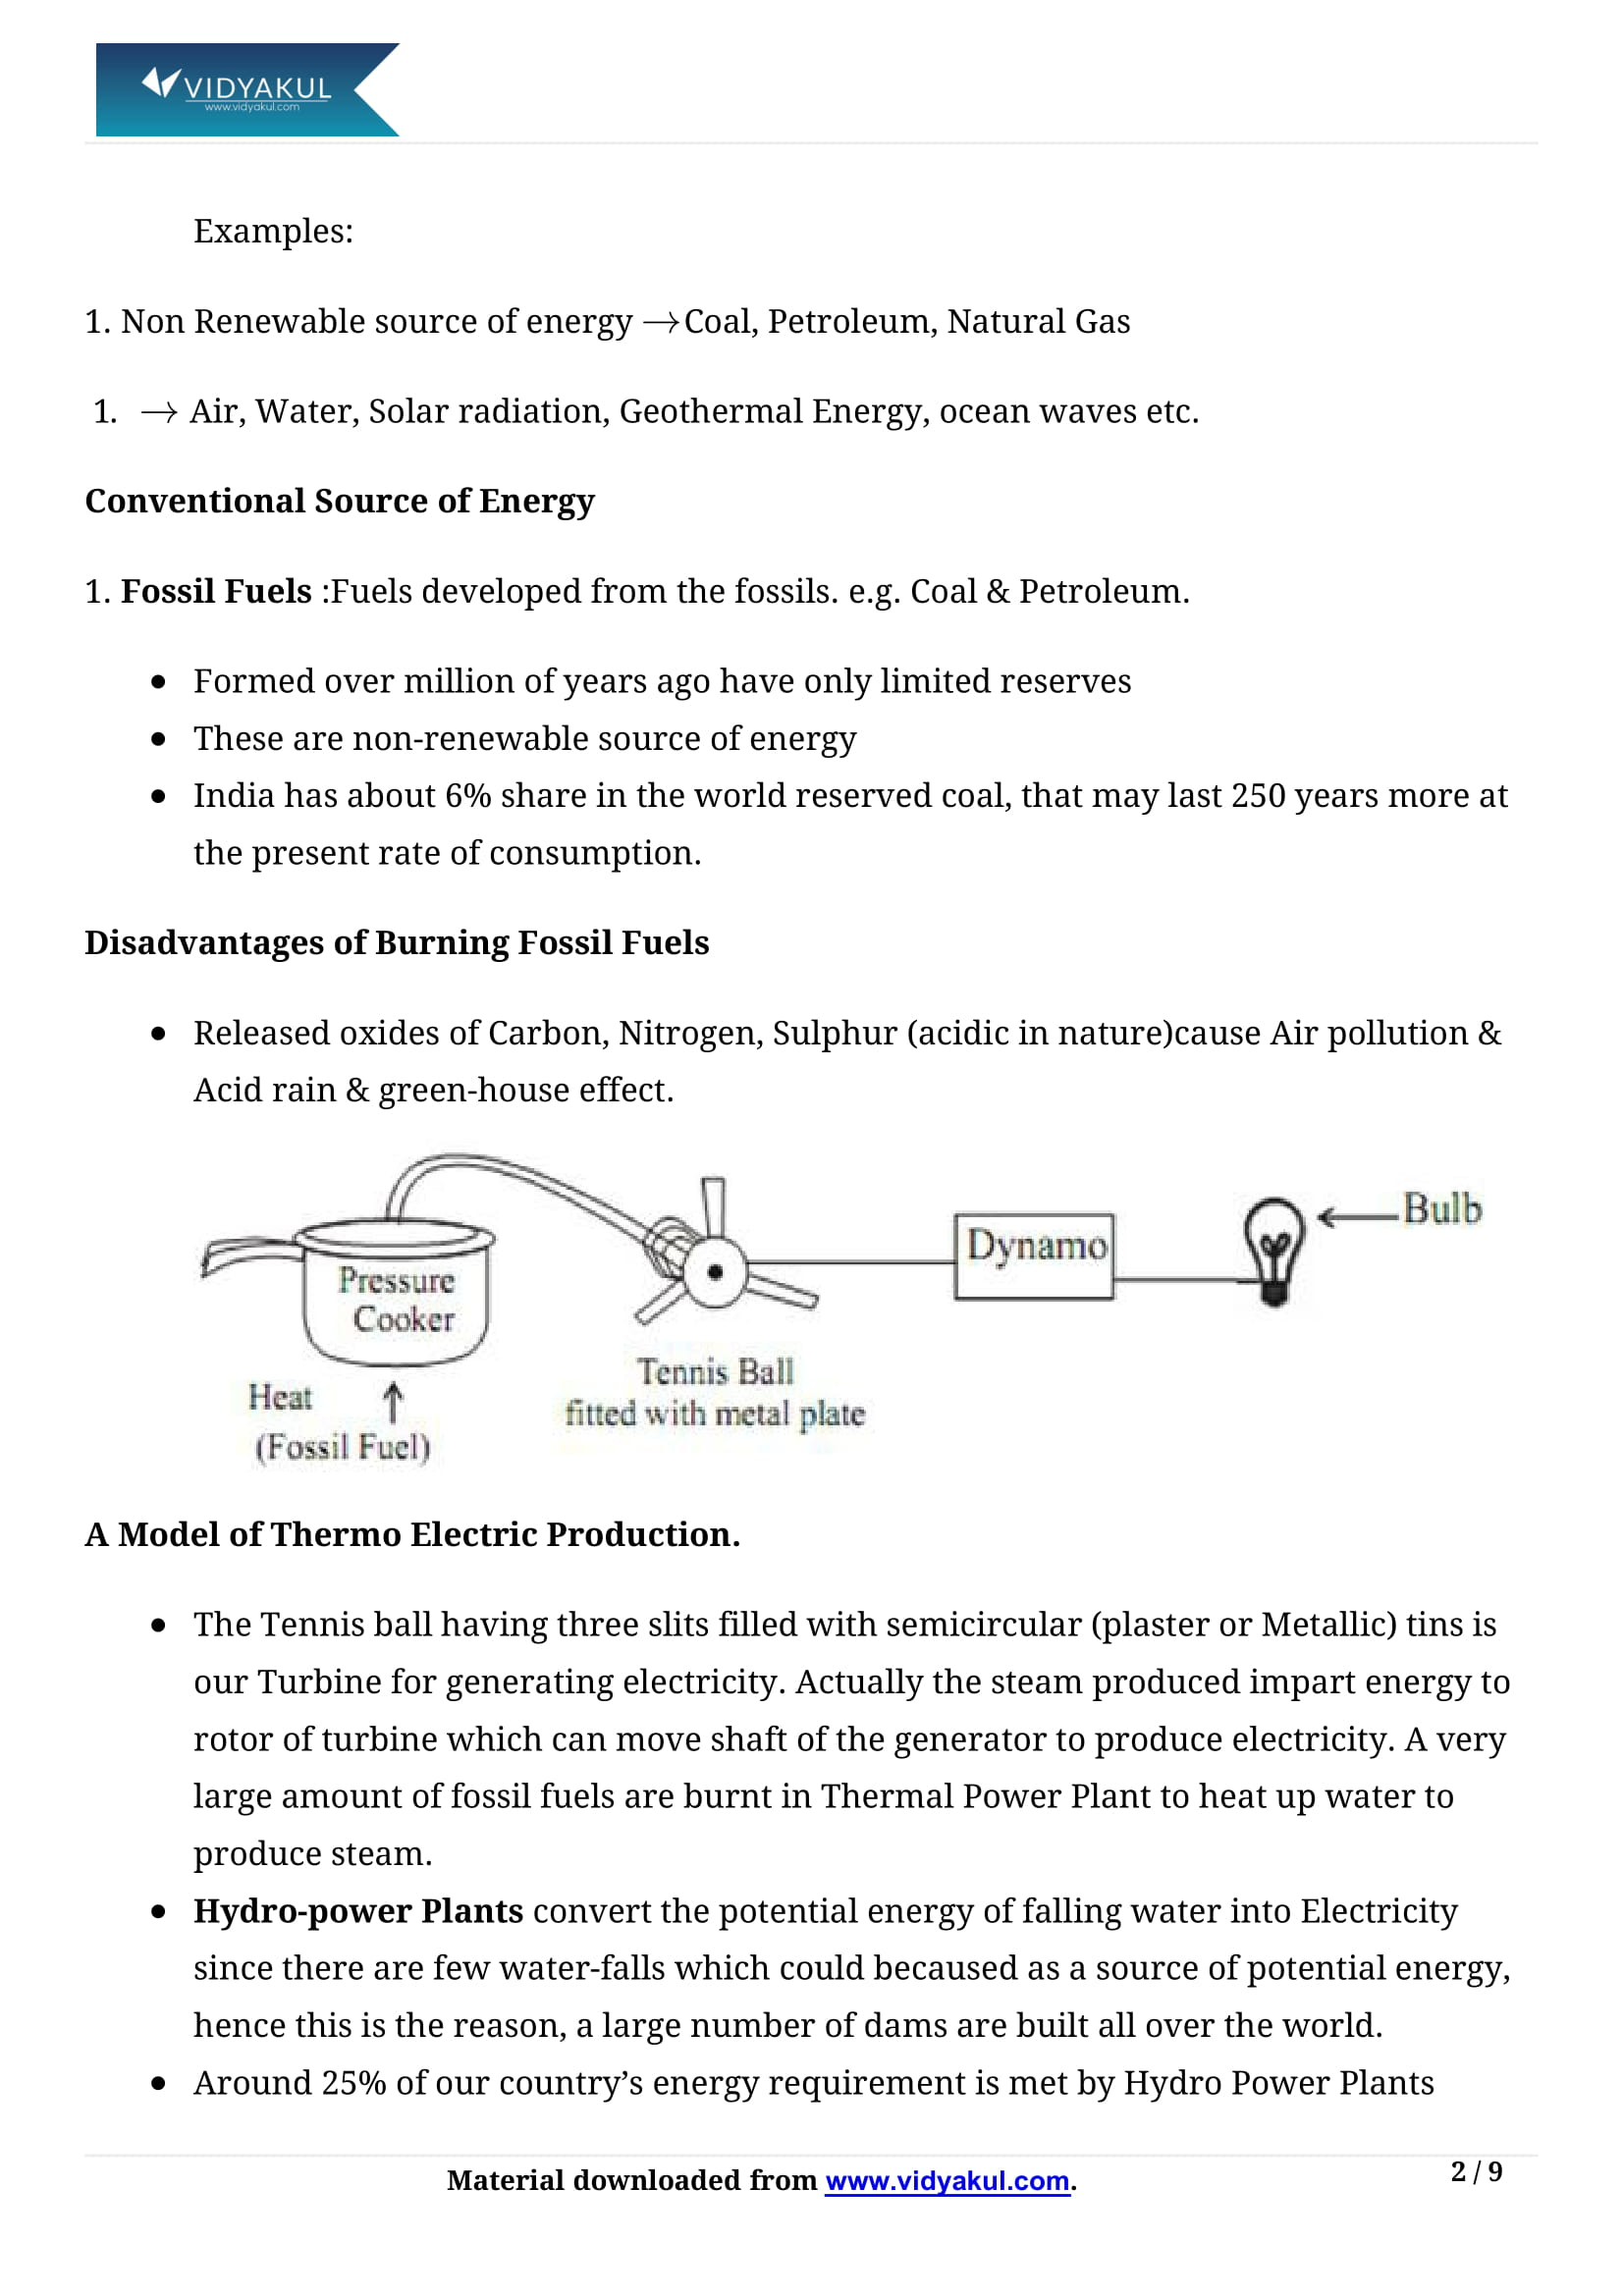 Sources of Energy Class 10 Notes   Vidyakul